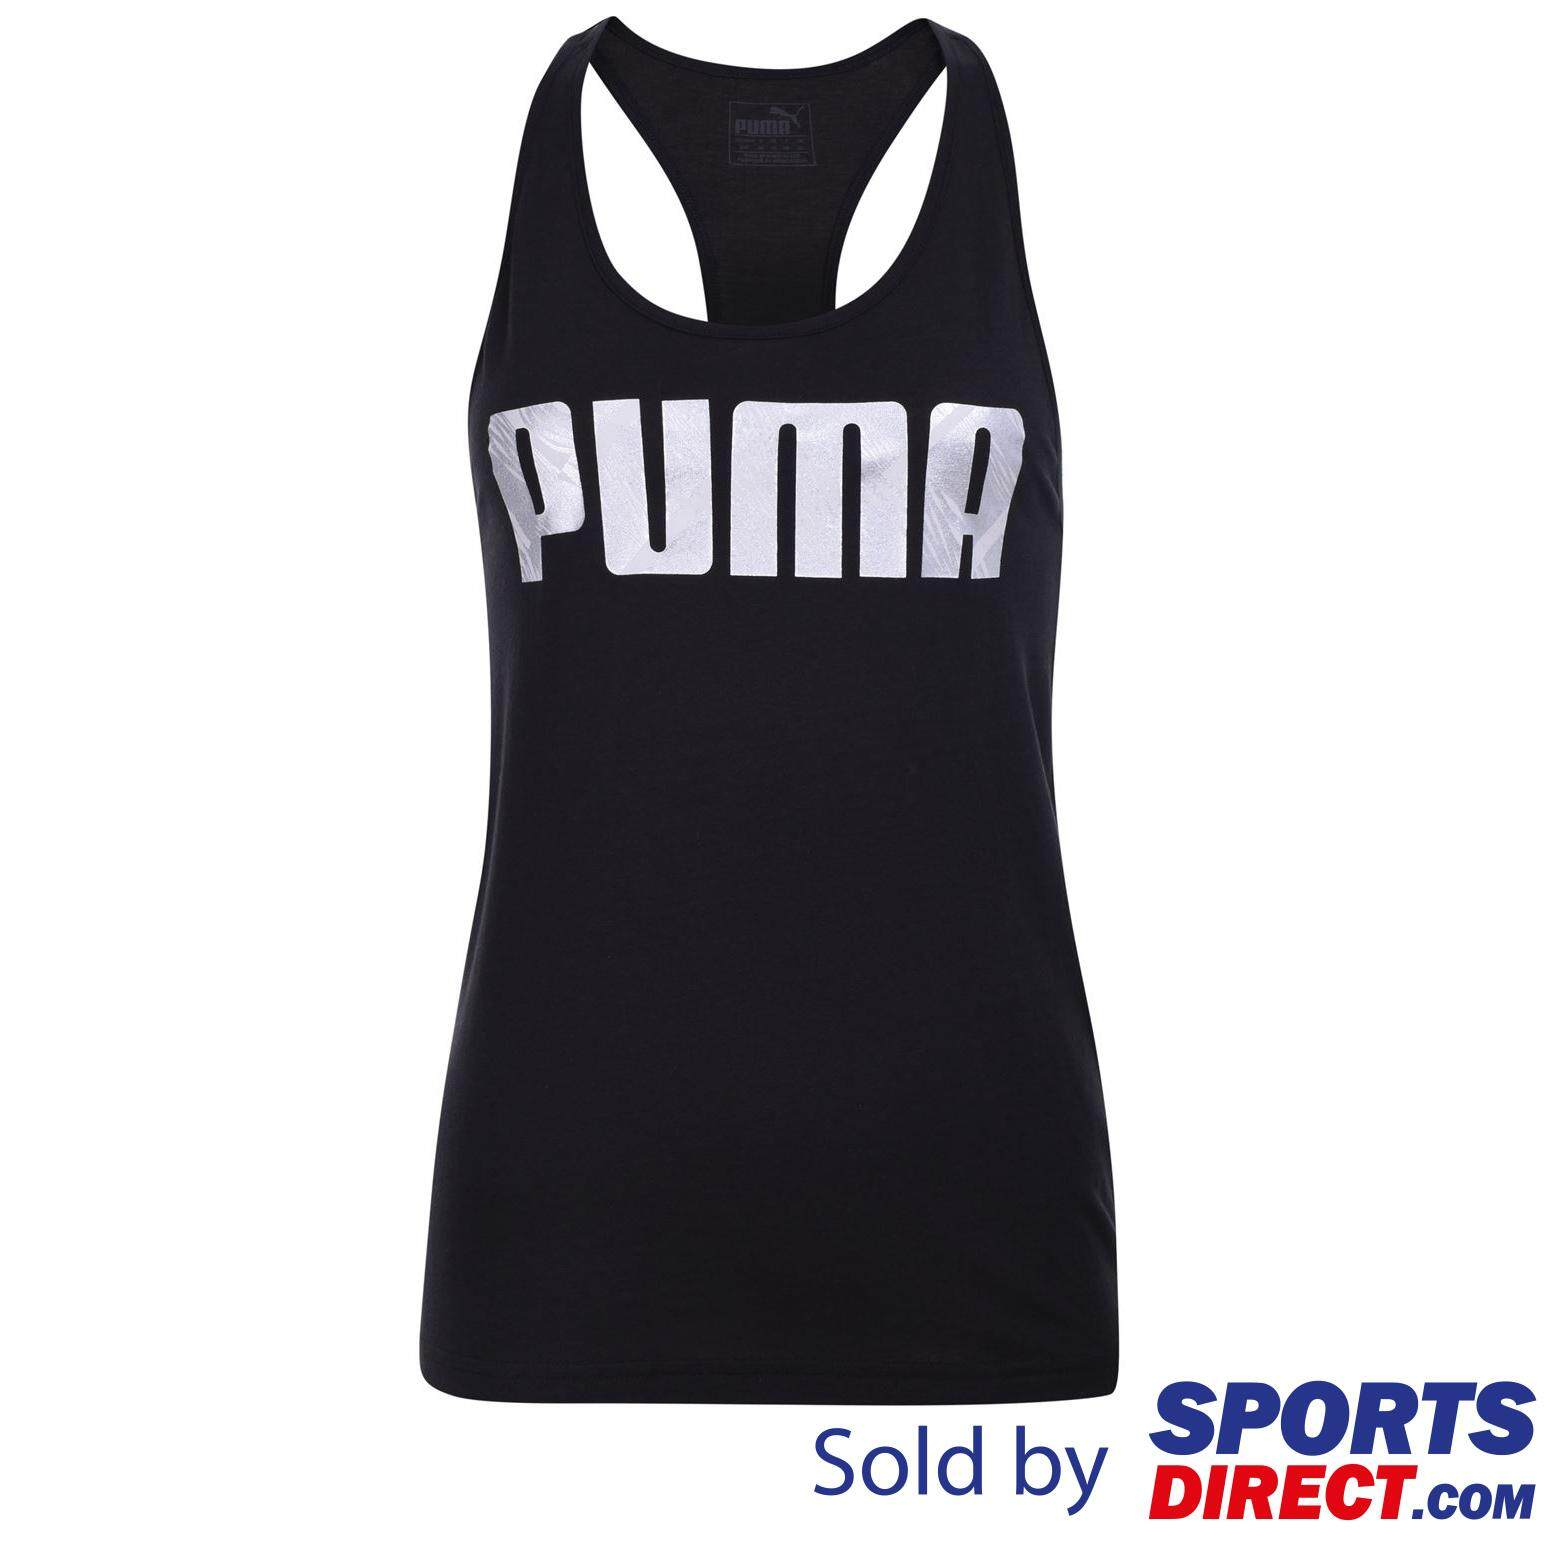 8814f9ce69 Puma Products With Best Online Price At Lazada Malaysia